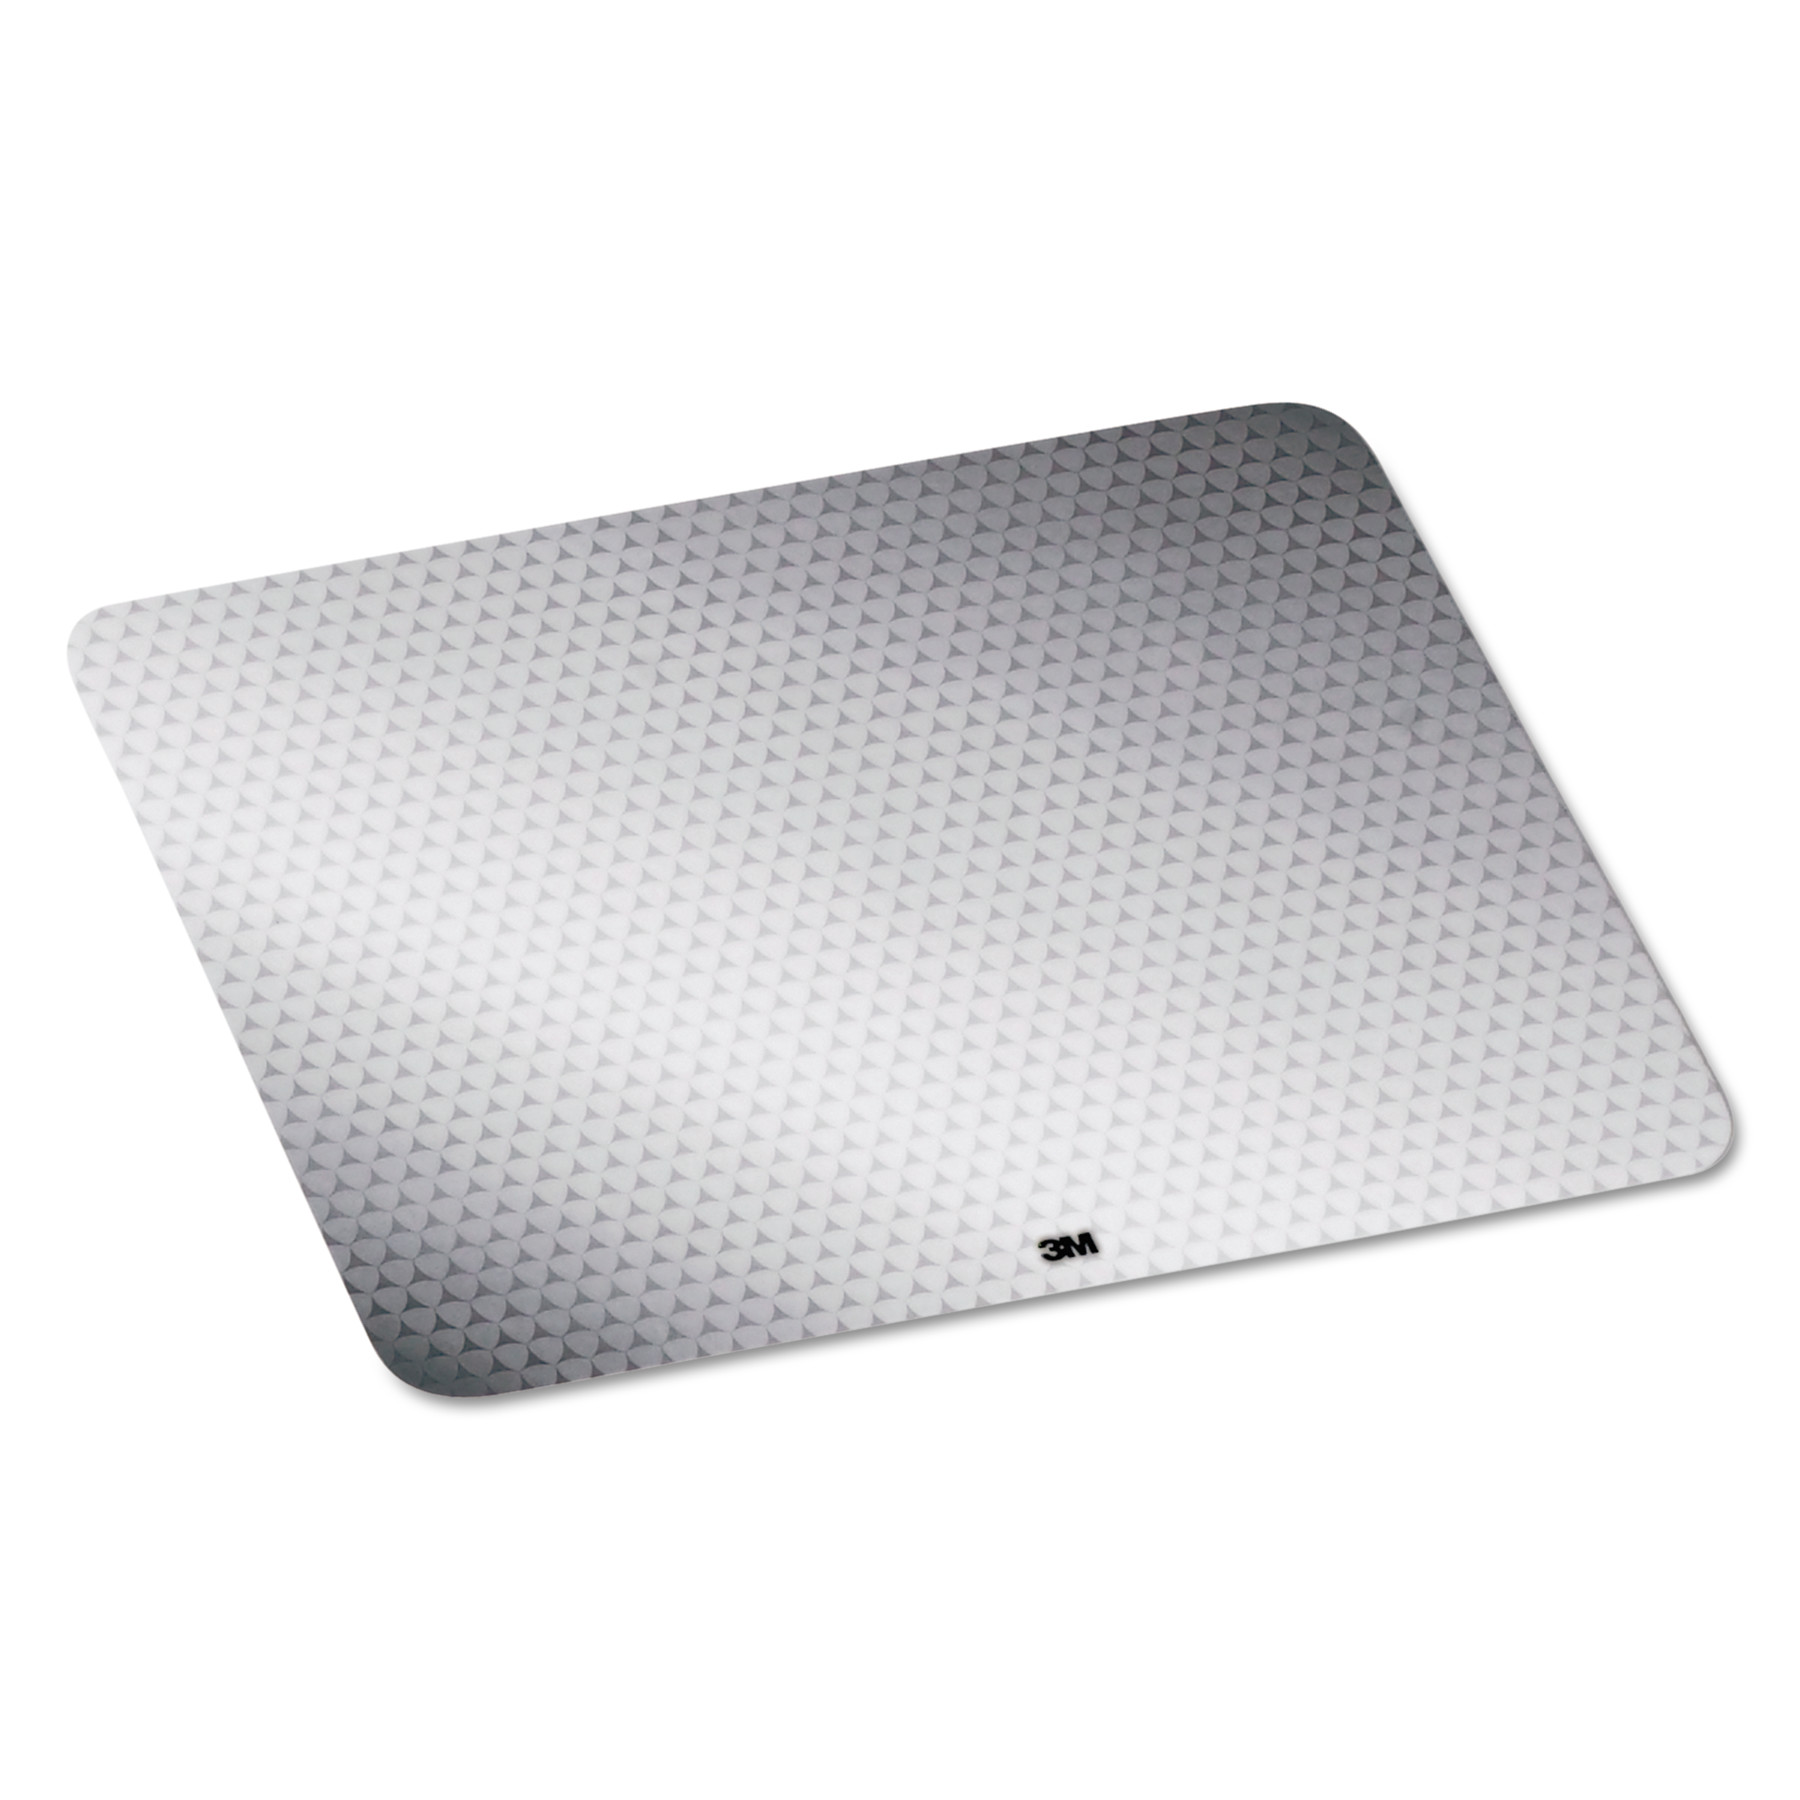 3M Precise Mouse Pad, Nonskid Repositionable Adhesive Back, Gray Frostbyte